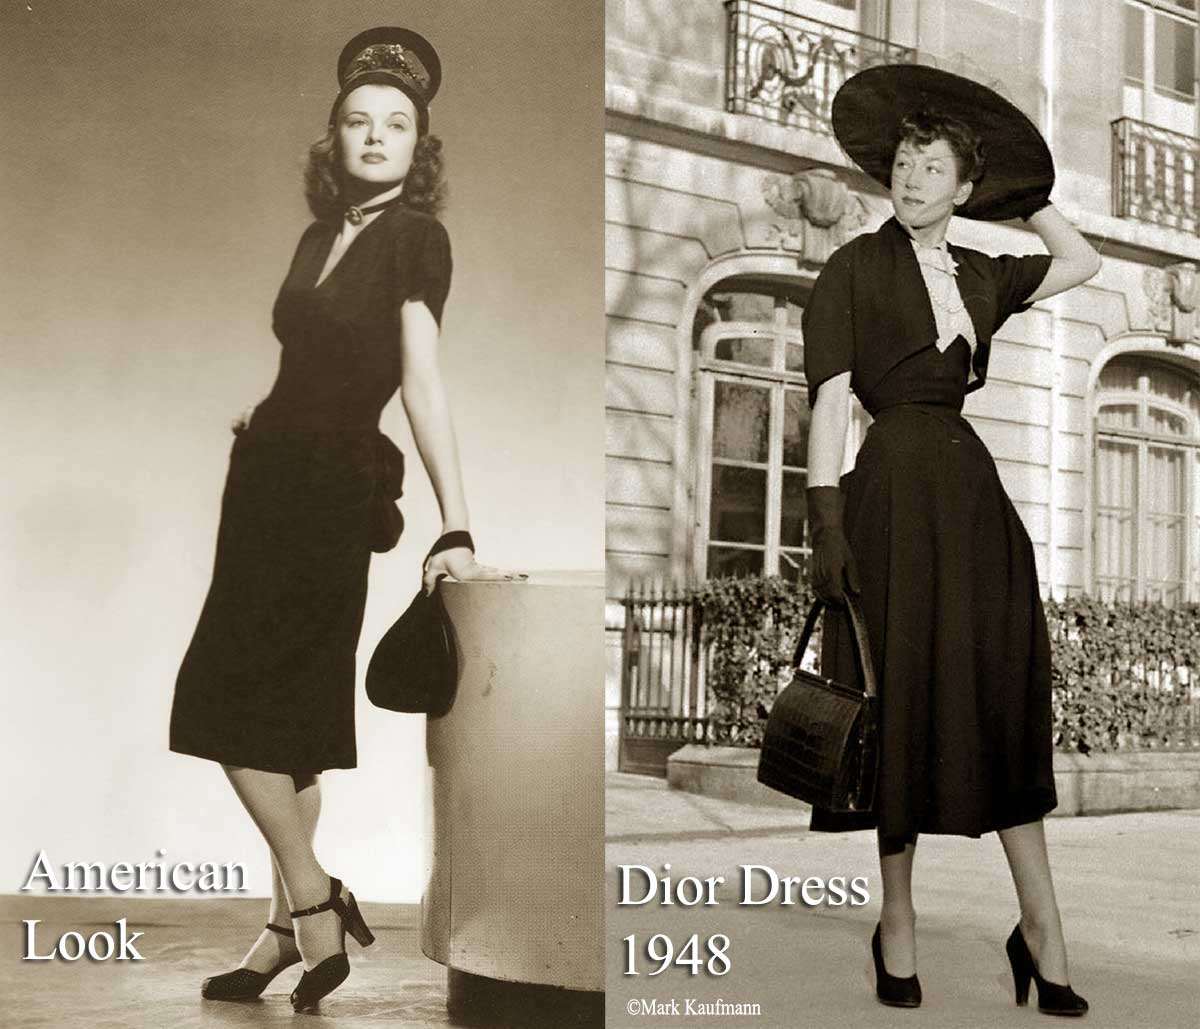 1940 s Fashion   Womens Dress Style after the War 1940s post war fashion   America vs Paris